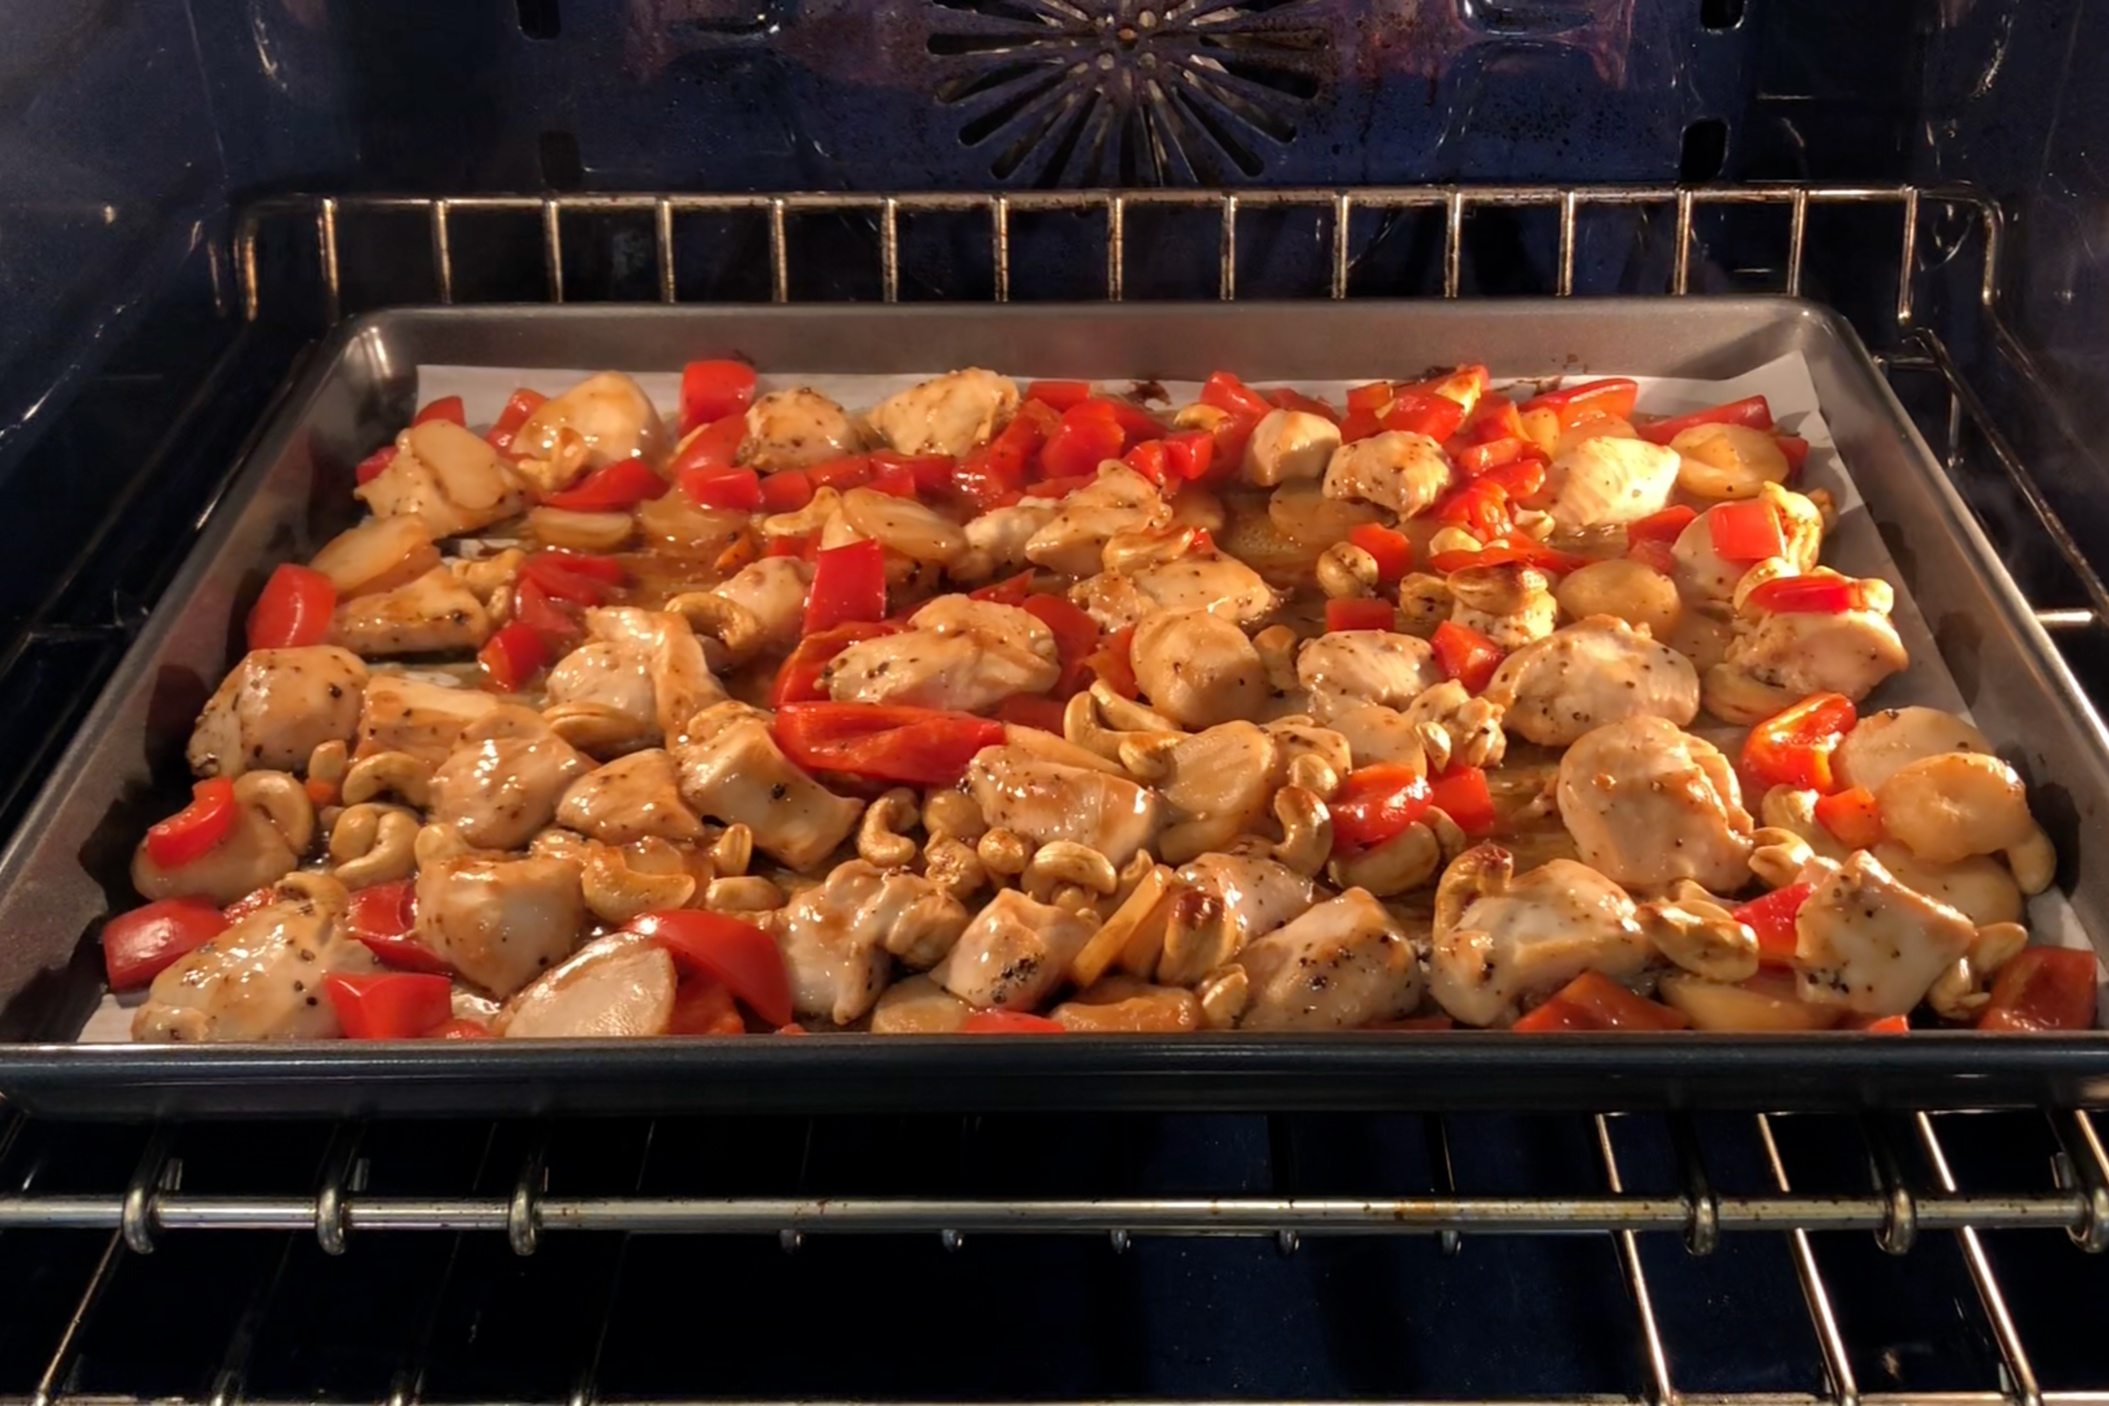 7. Spread chicken, pepper, water chestnuts and cashews evenly on the sheet pan. Cook for 12 minutes. -